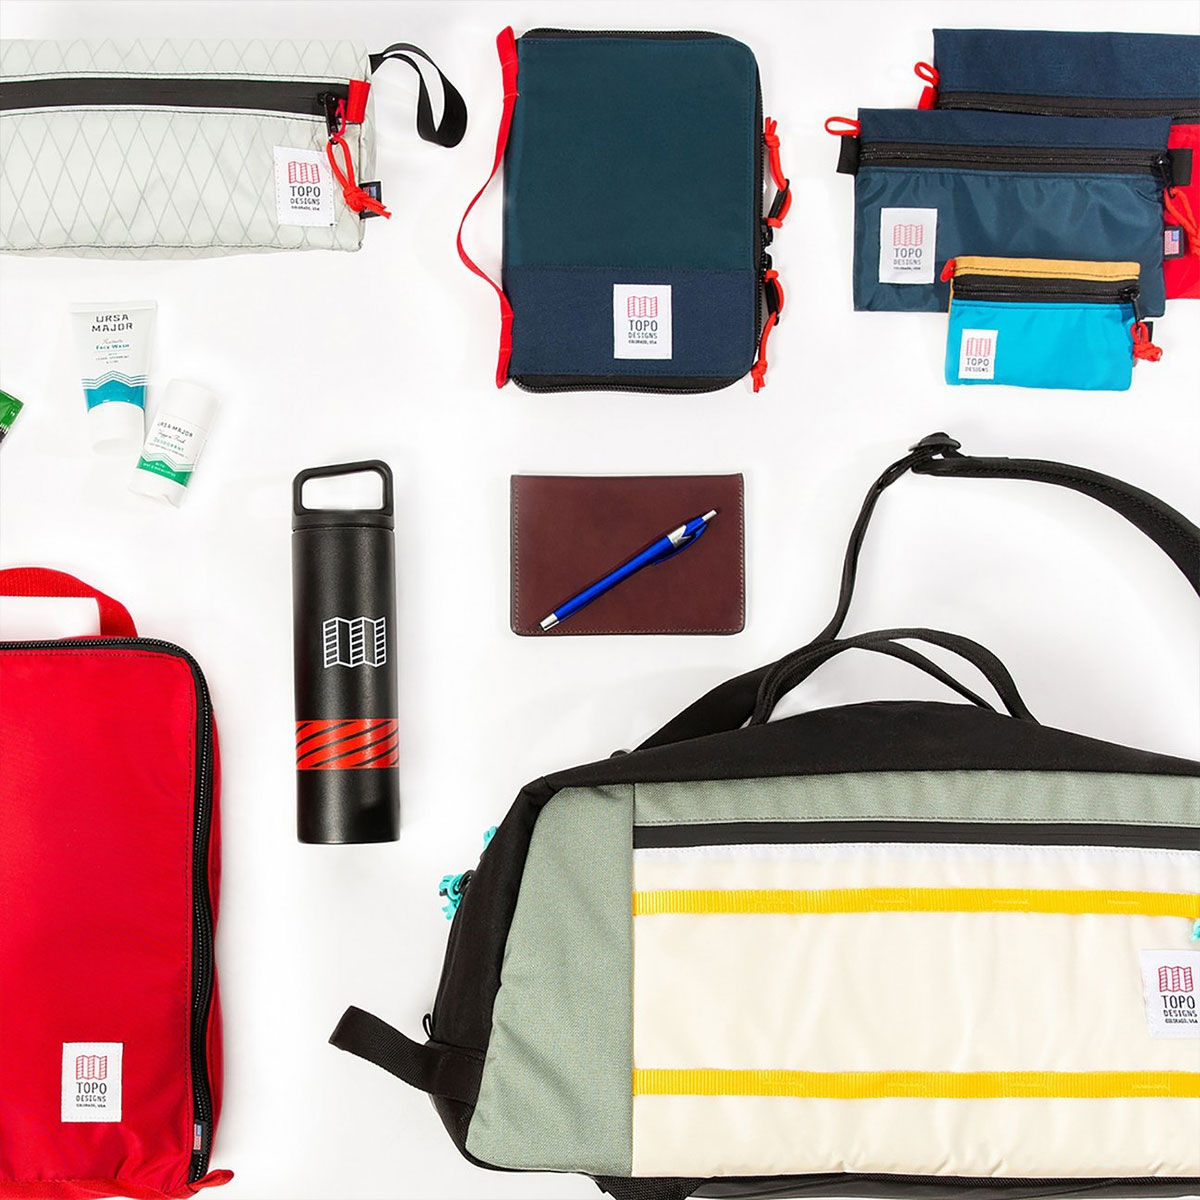 Topo Designs Global Case, A5 document case with handy functionalities